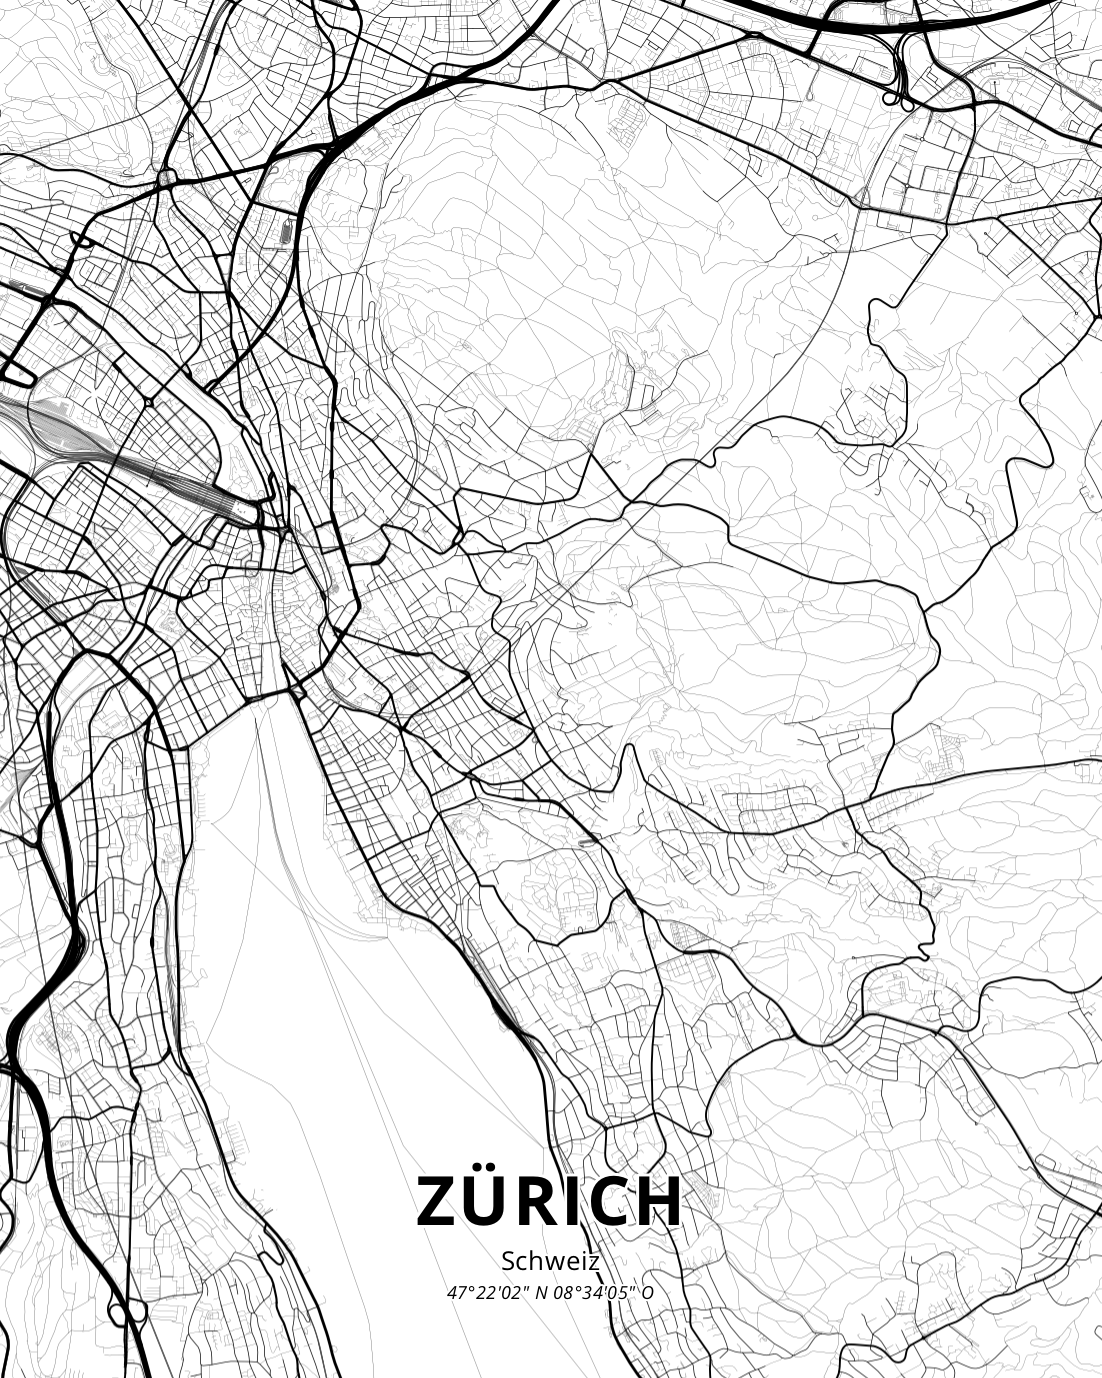 Zurich Map - The Dolder Grand